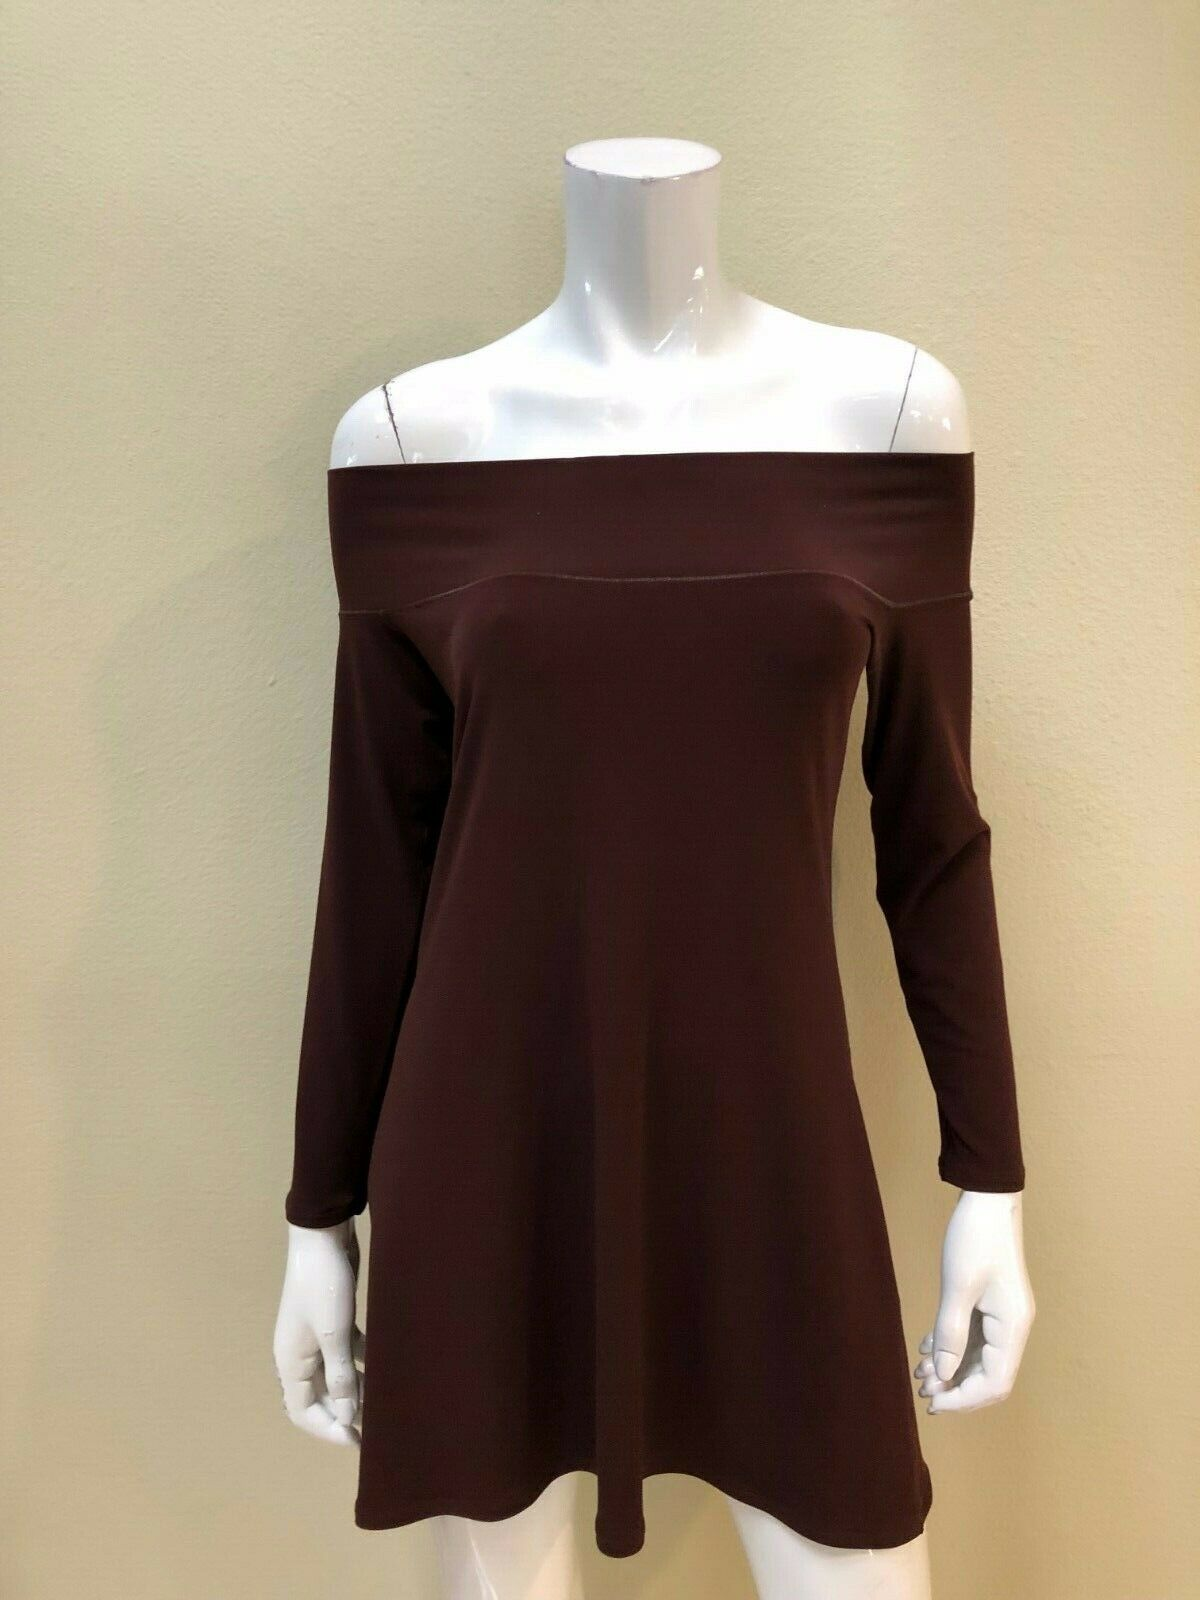 EVA VARRO NWT Solid braun Off the Shoulder Long Sleeved Top Blouse Größe Large